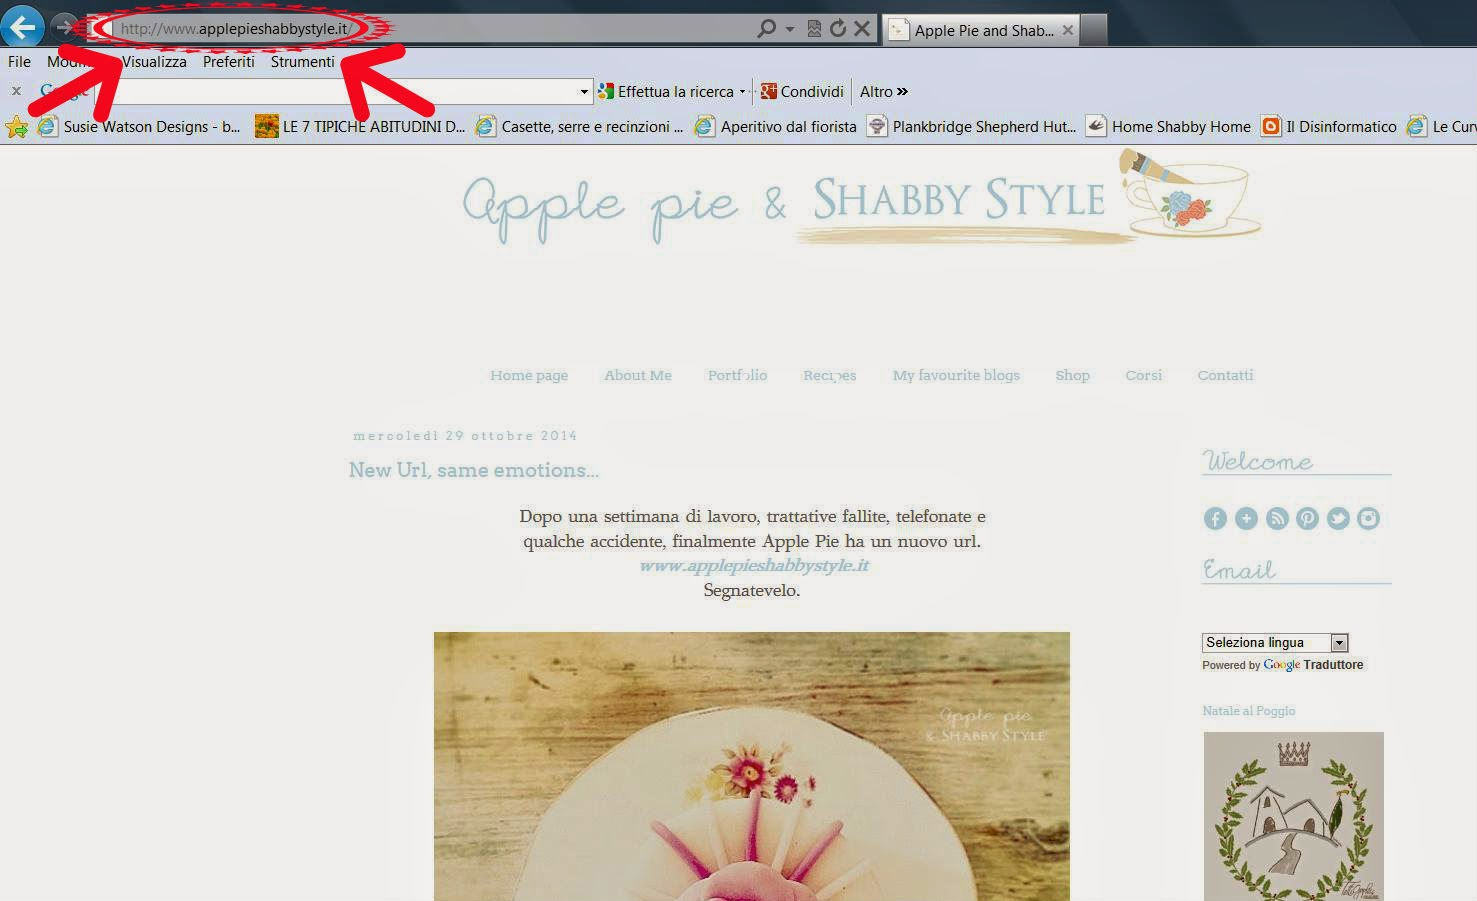 http://www.applepieshabbystyle.it/